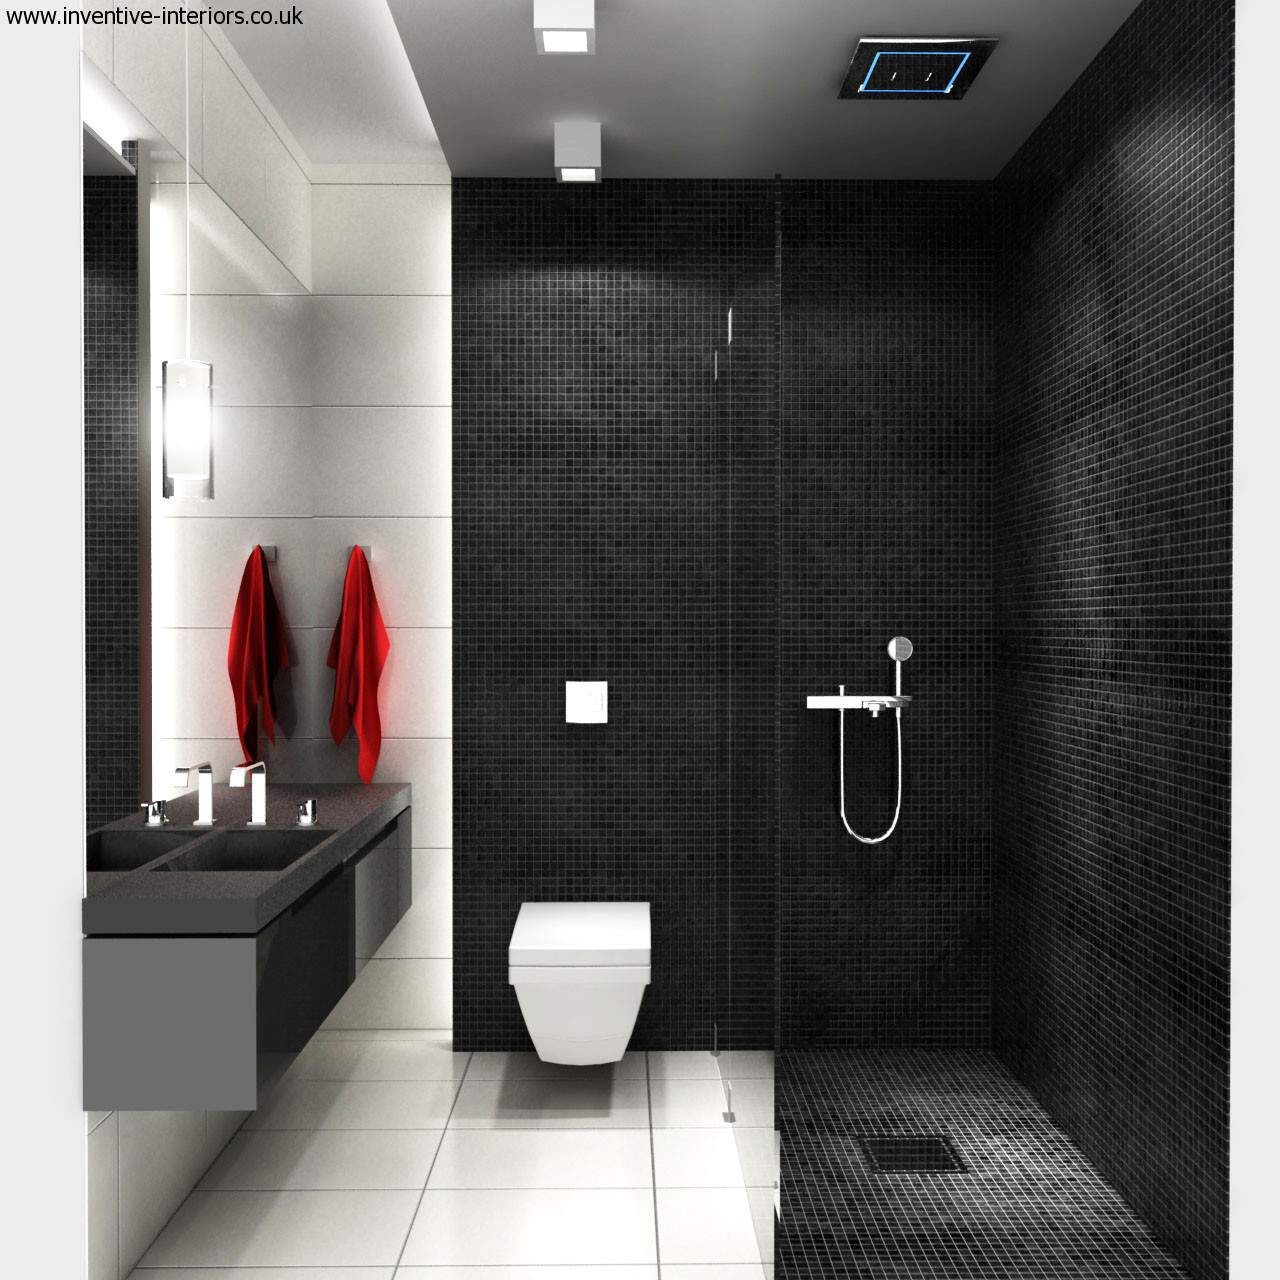 How to decorate a small bathroom in black and white - Bathroom Black